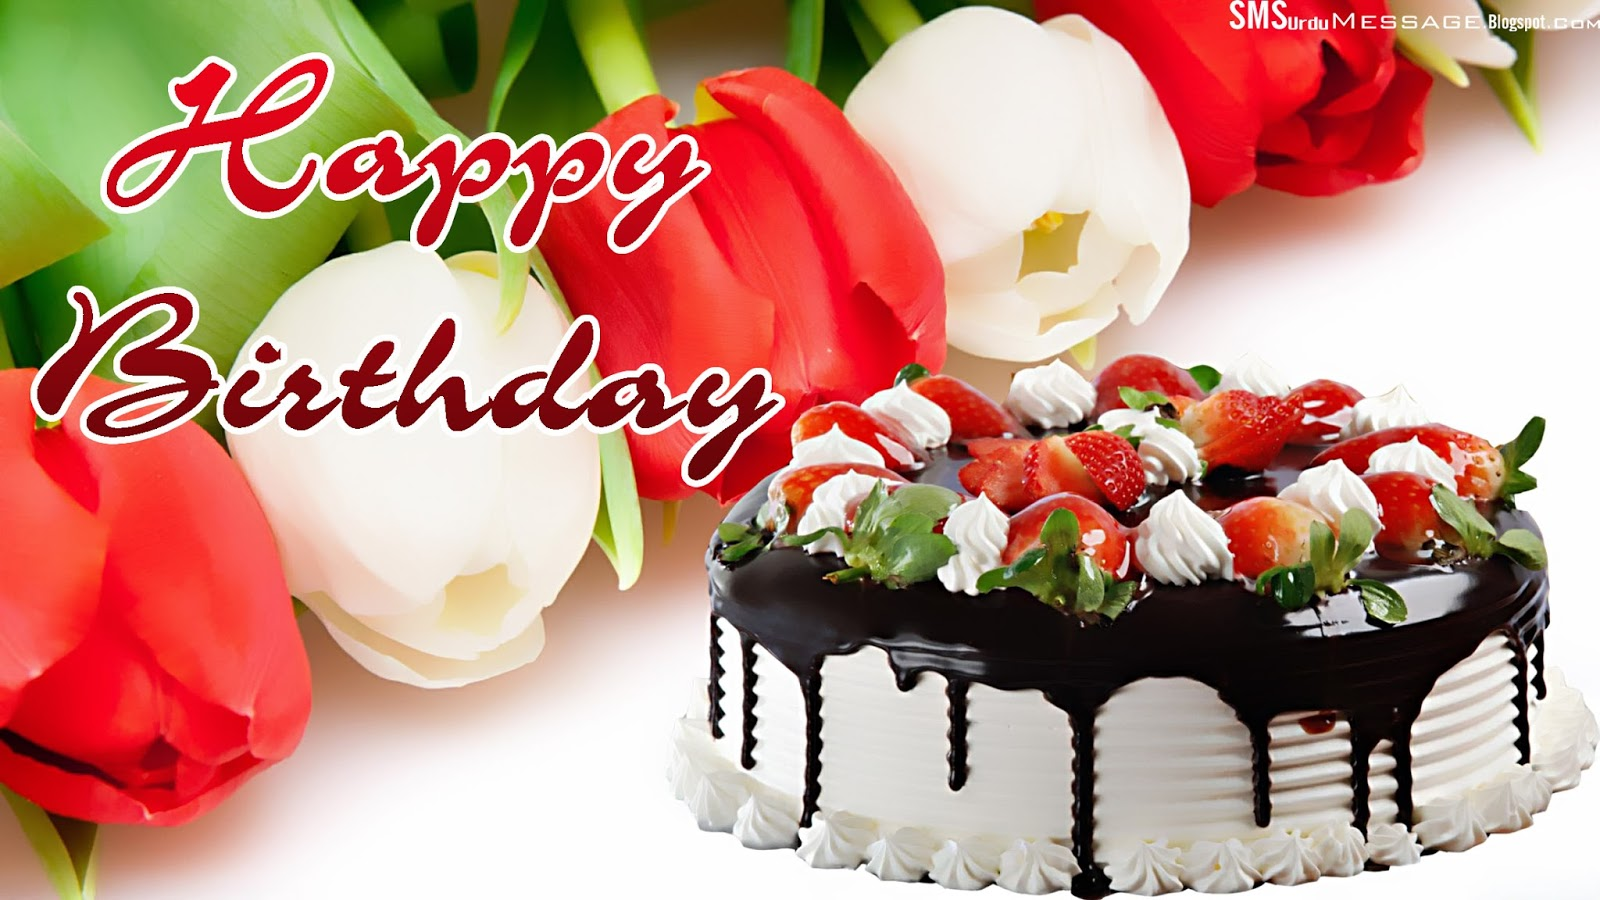 birthday wallpaper free download for mobile ; Happy-Birthday-Wallpaper-Free-Download-Mobile-5